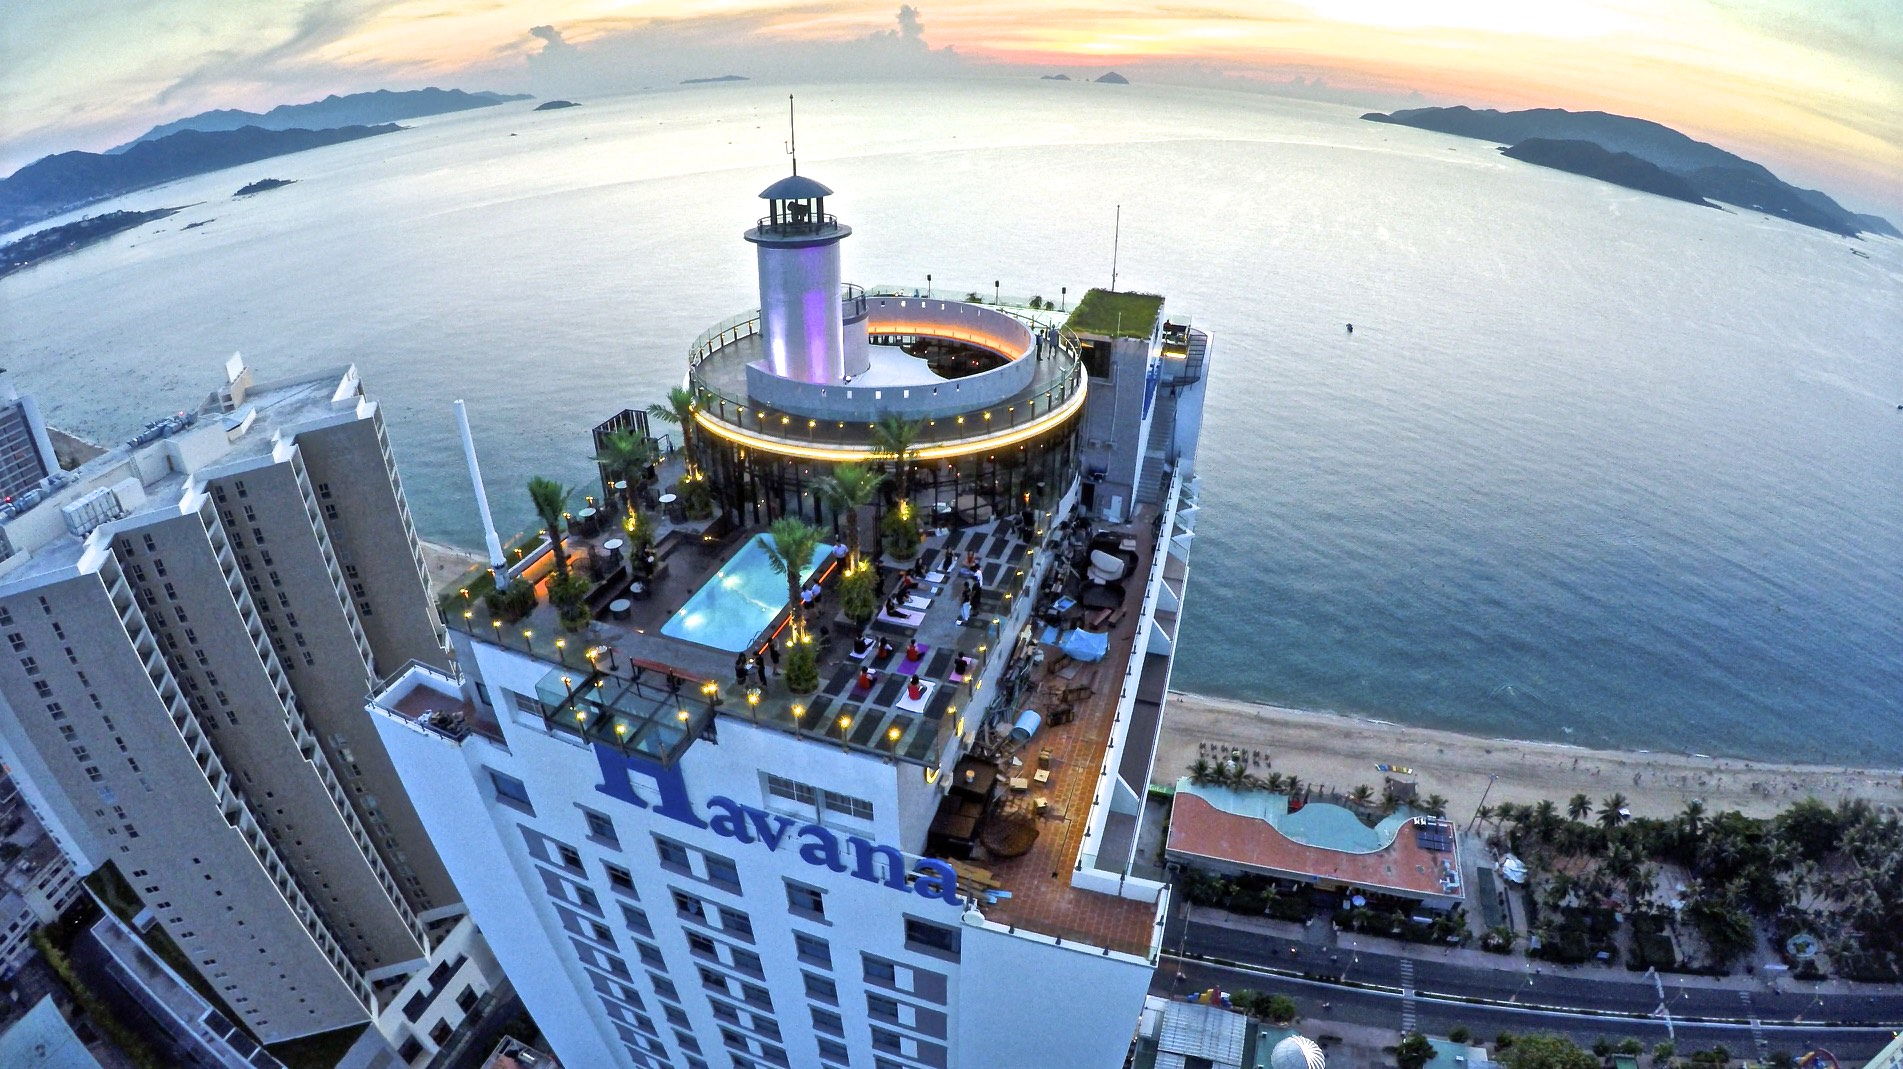 Skylight: 360° Skydeck & Rooftop Beach Club - Best Western Havana Nha Trang Hotel. Photo courtesy of Kyle Nguyen. All property of Skylight/See The World Group.